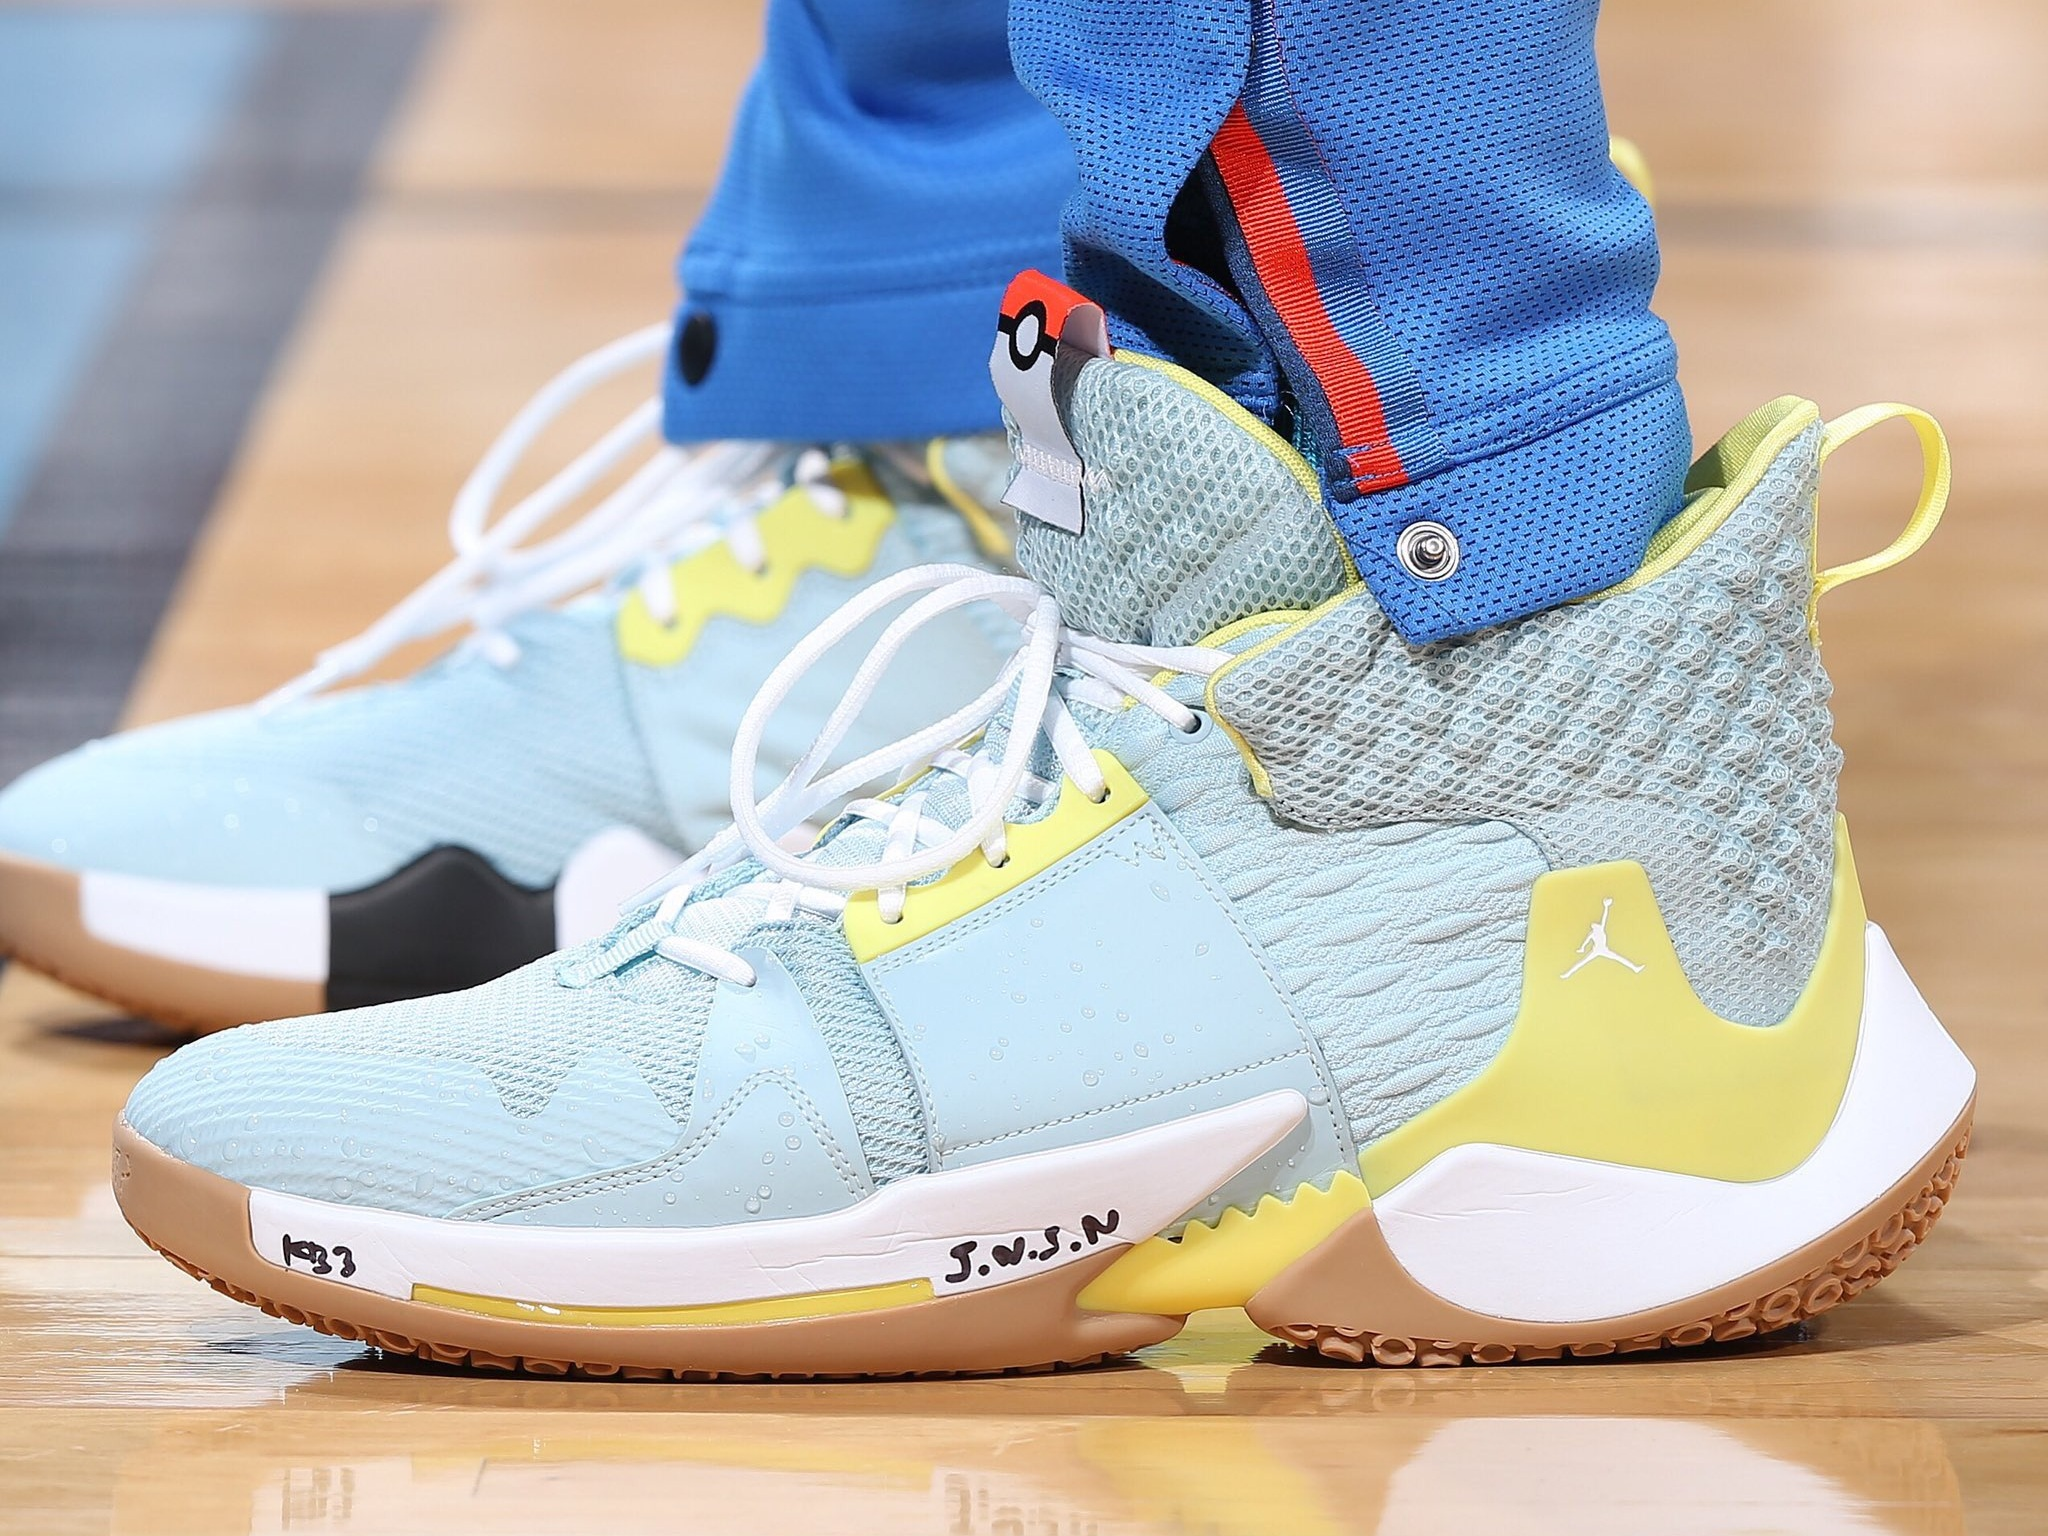 Russell Westbrook wearing the Squirtle-inspired Jordan Why Not Zer0.2 - Oklahoma City Thunder vs. Denver Nuggets | March 29, 201927 Points9 Assists9 Rebounds2 Steals11-22 Shooting